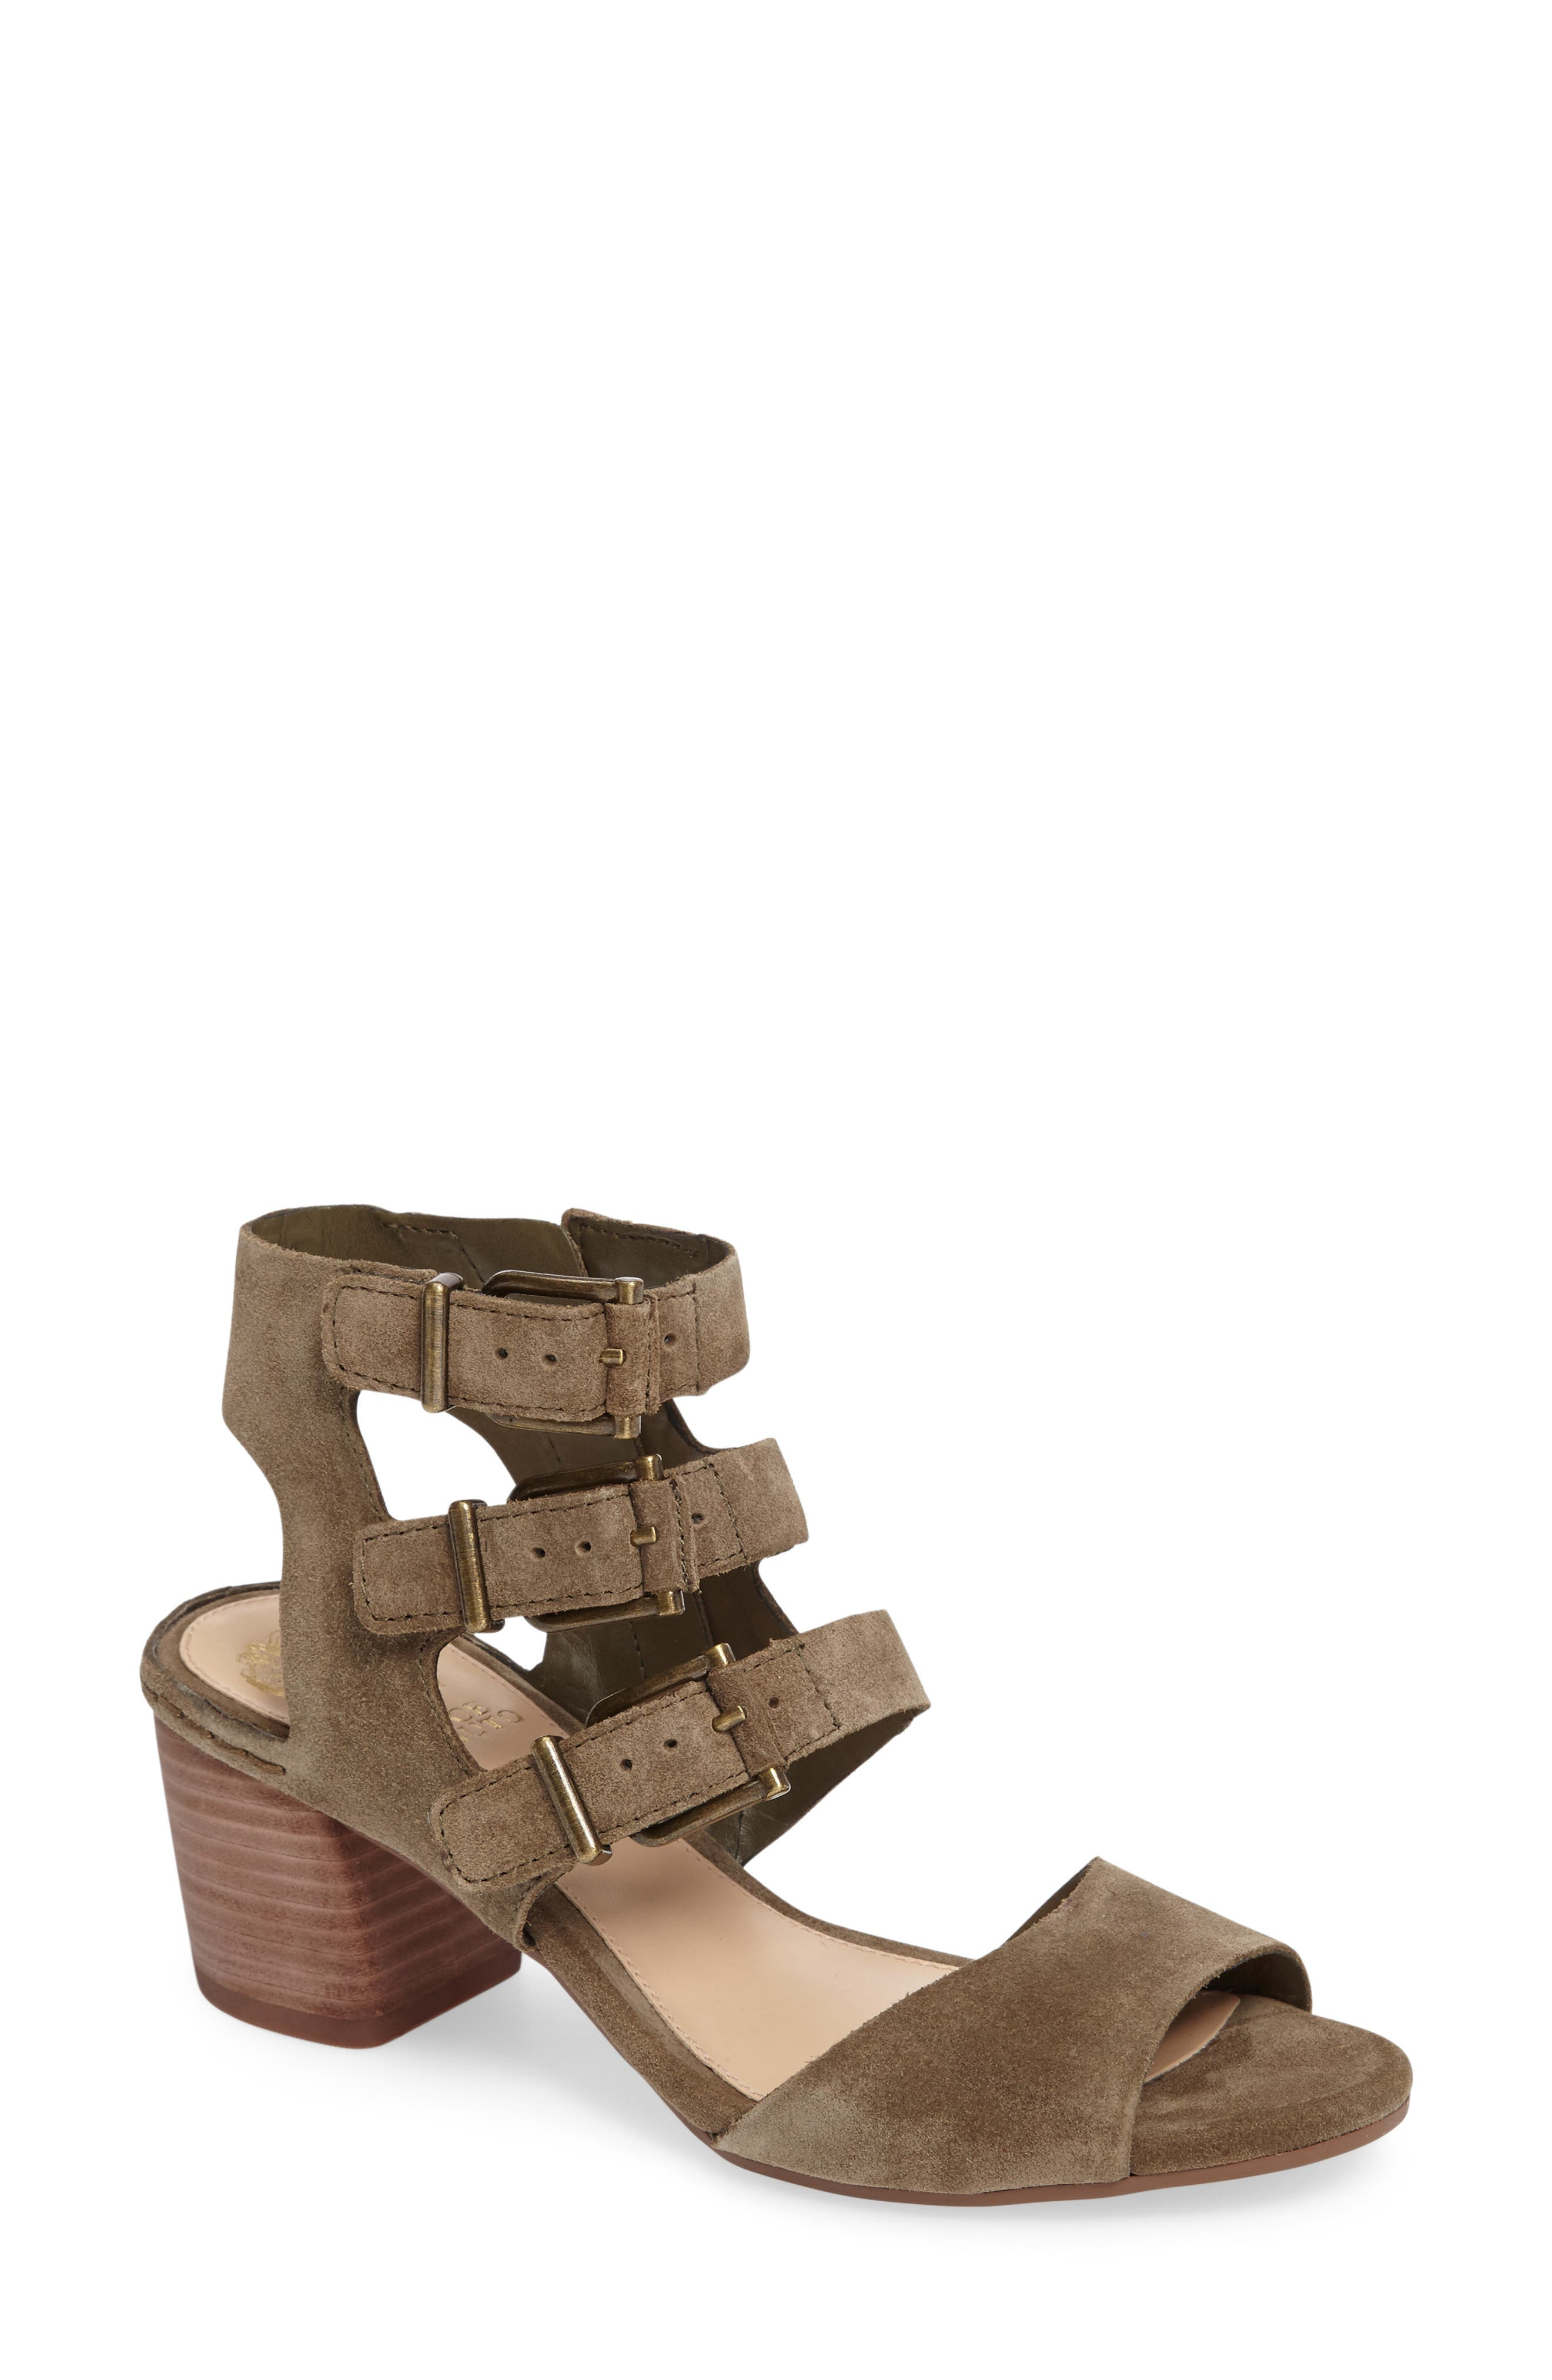 Geriann Strappy Slingback Sandal,                         Main,                         color, Truffle Suede